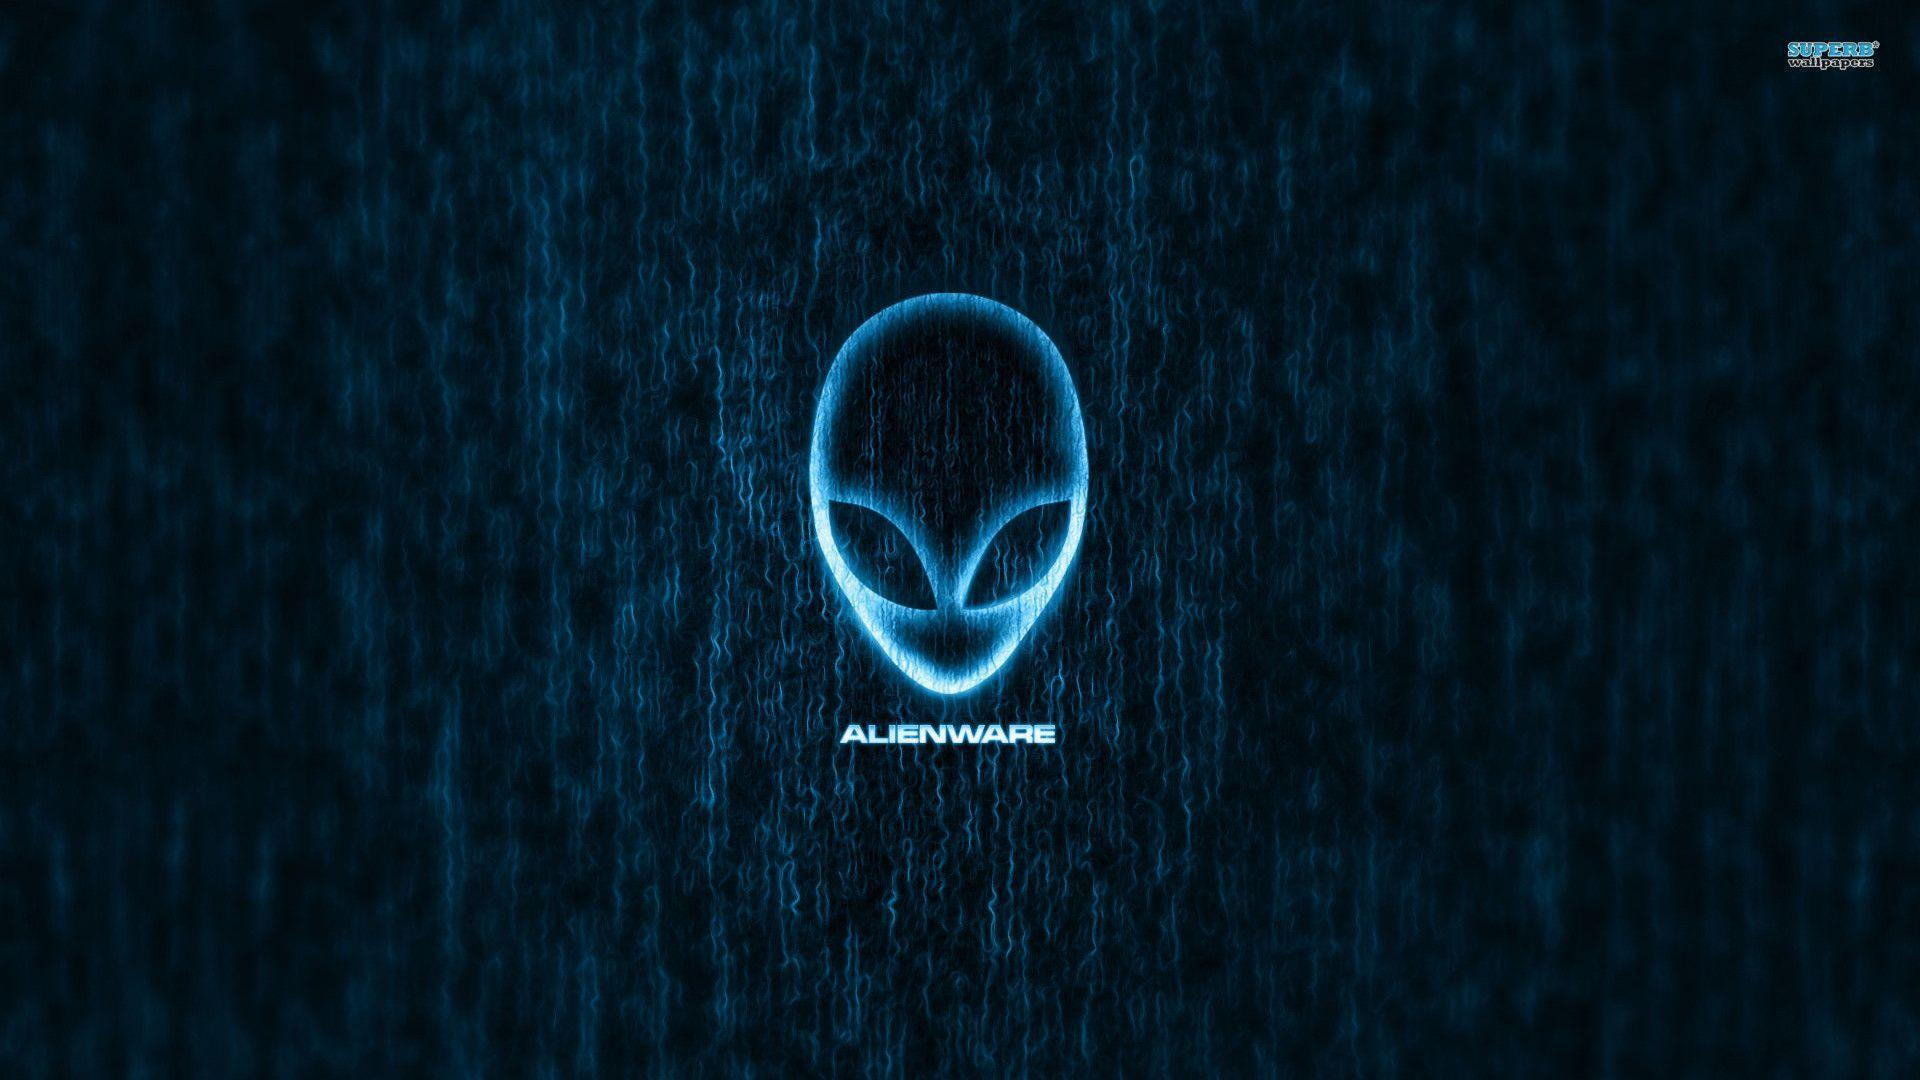 Alienware Wallpapers 1920x1080 1920x1080